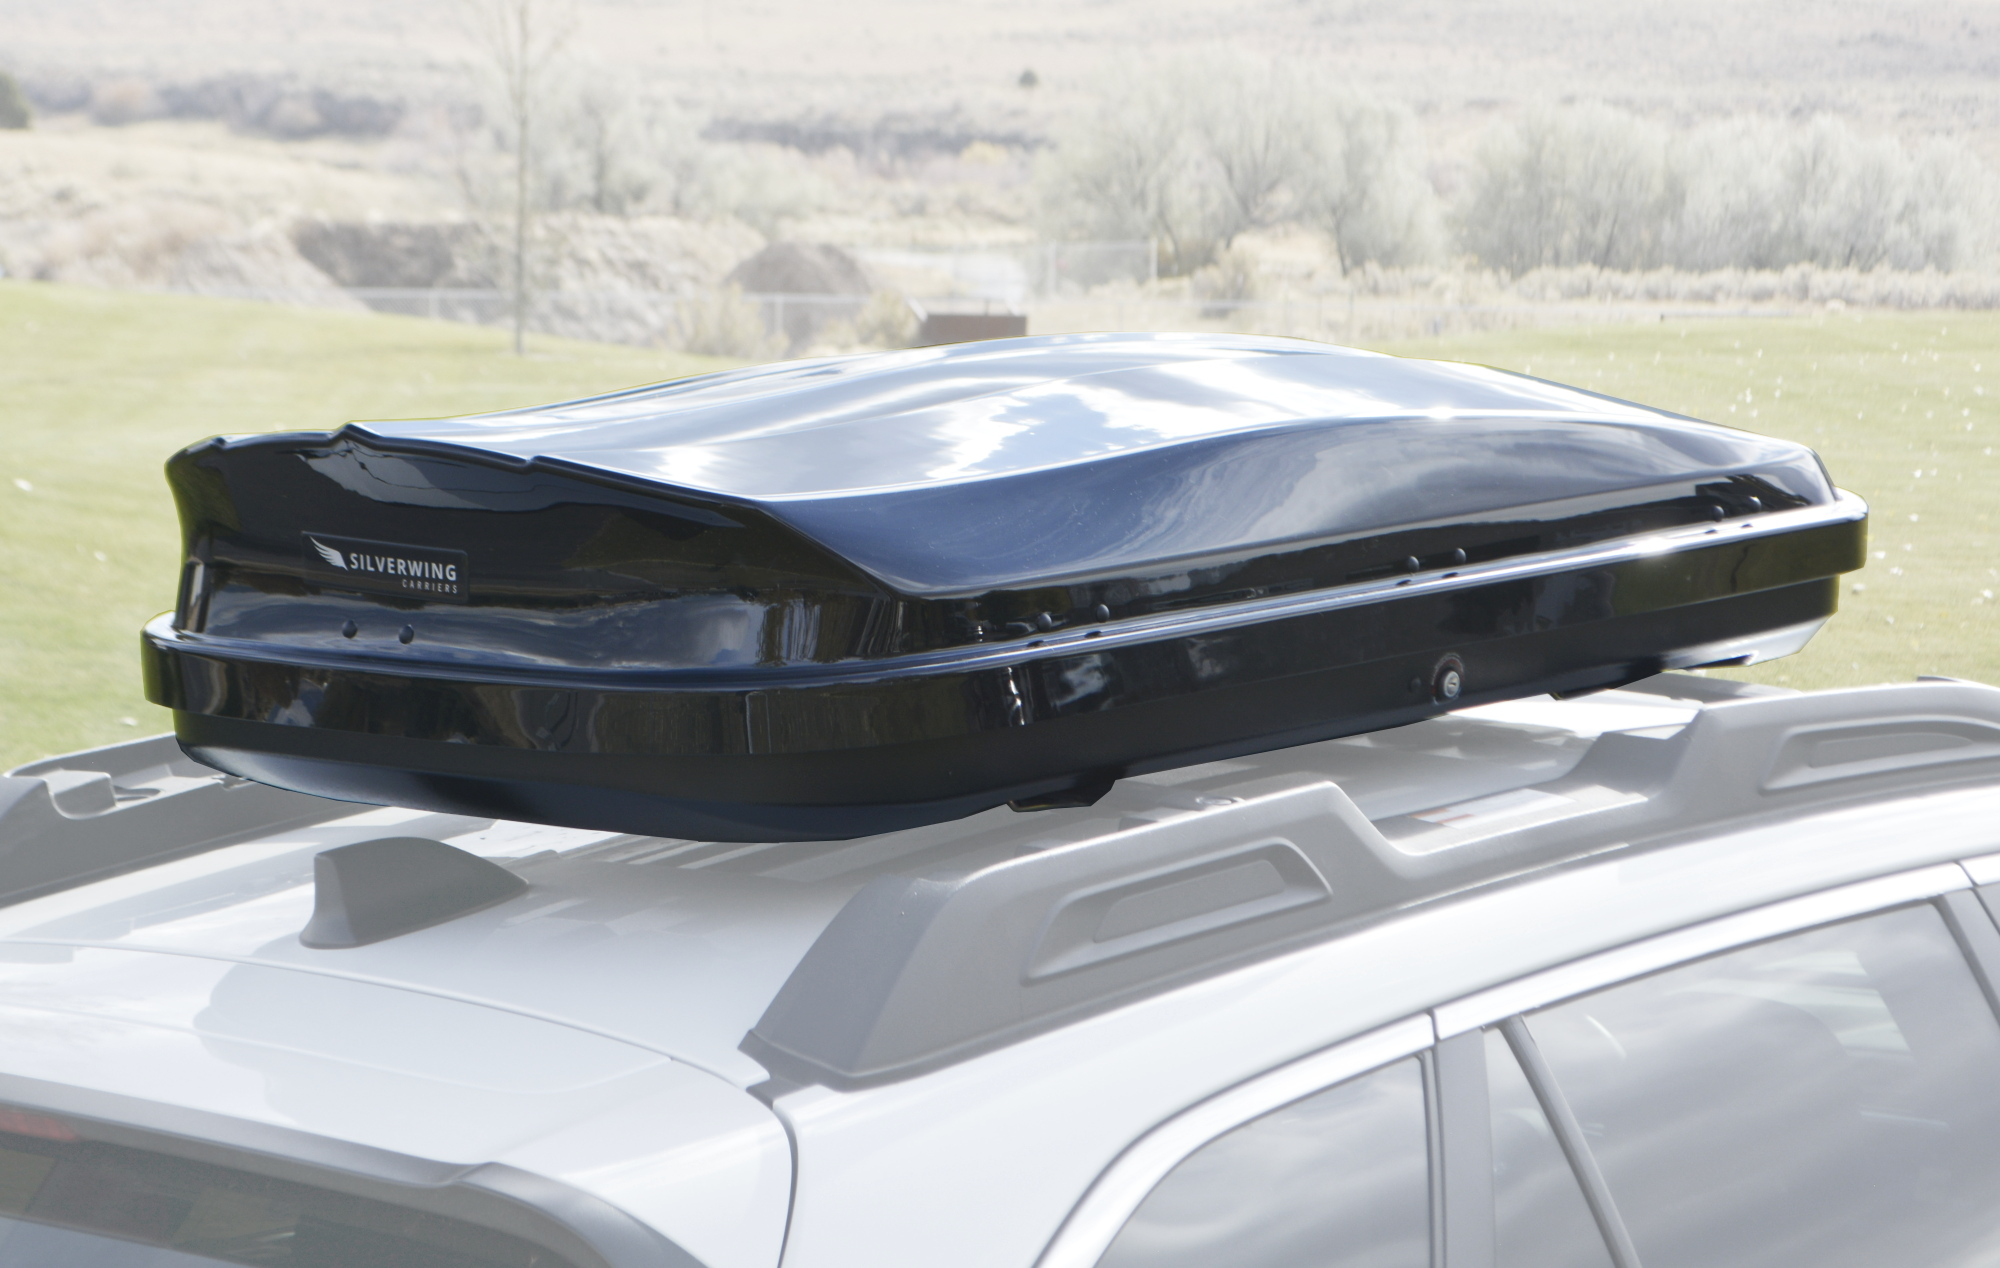 Silverwing Swc16 Automotive Cargo Roof Carrier Box